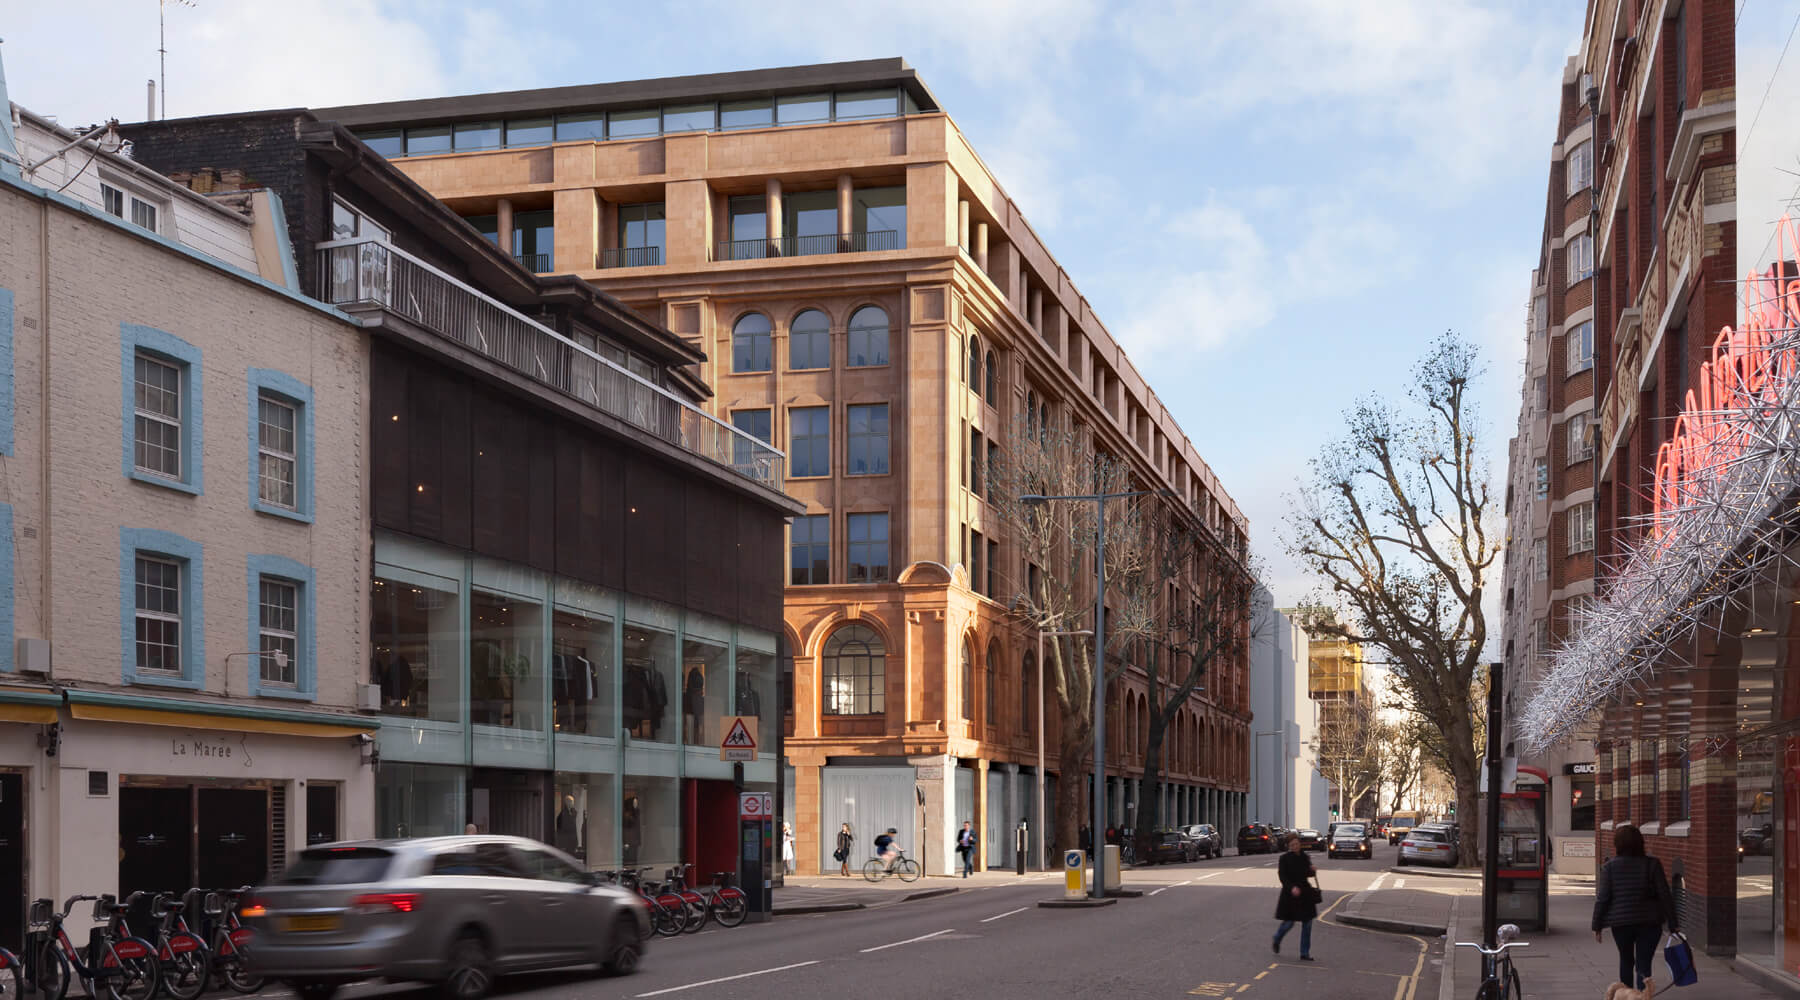 Approval for linked sites in RBKC